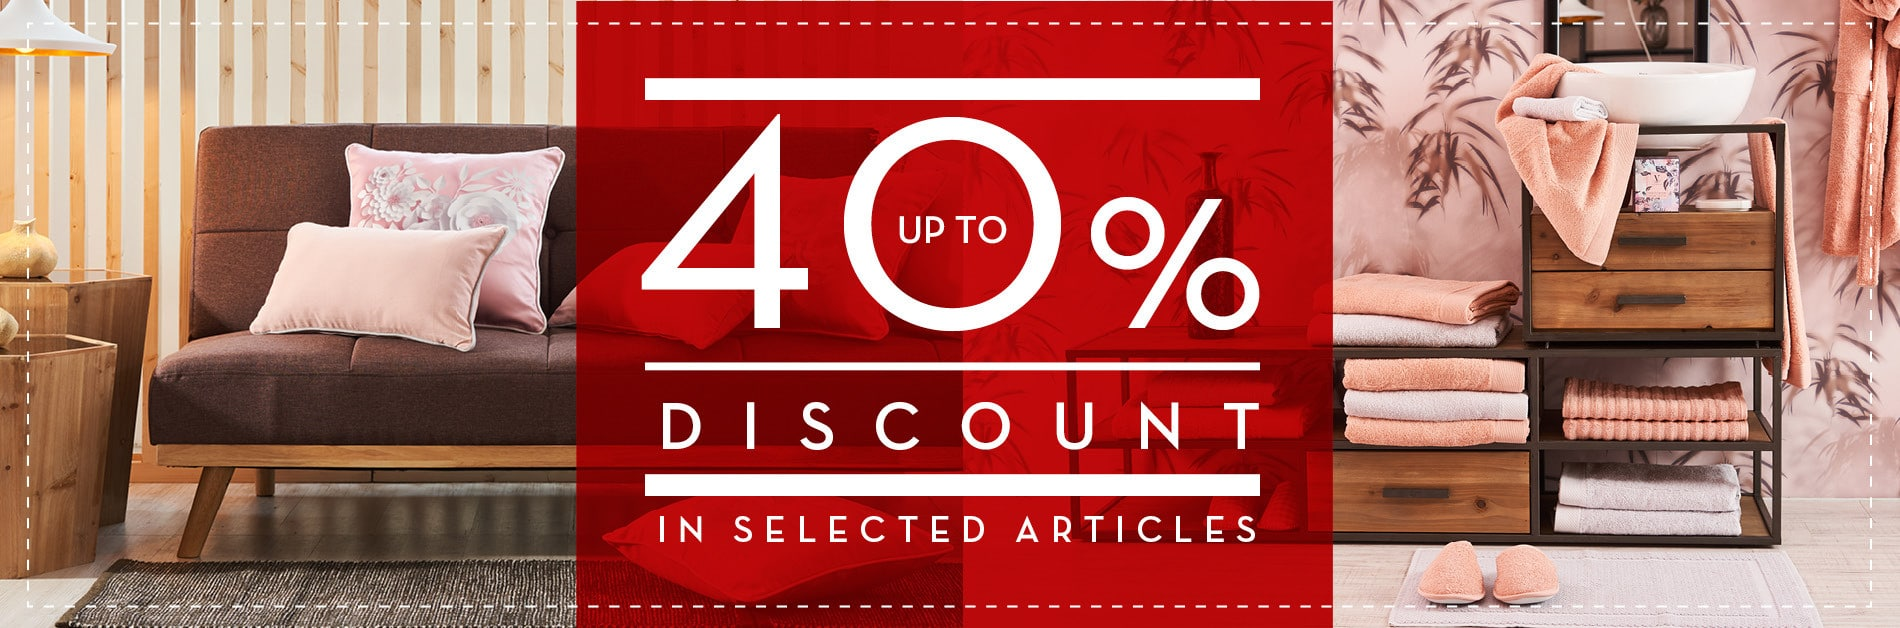 40% Off in selected items